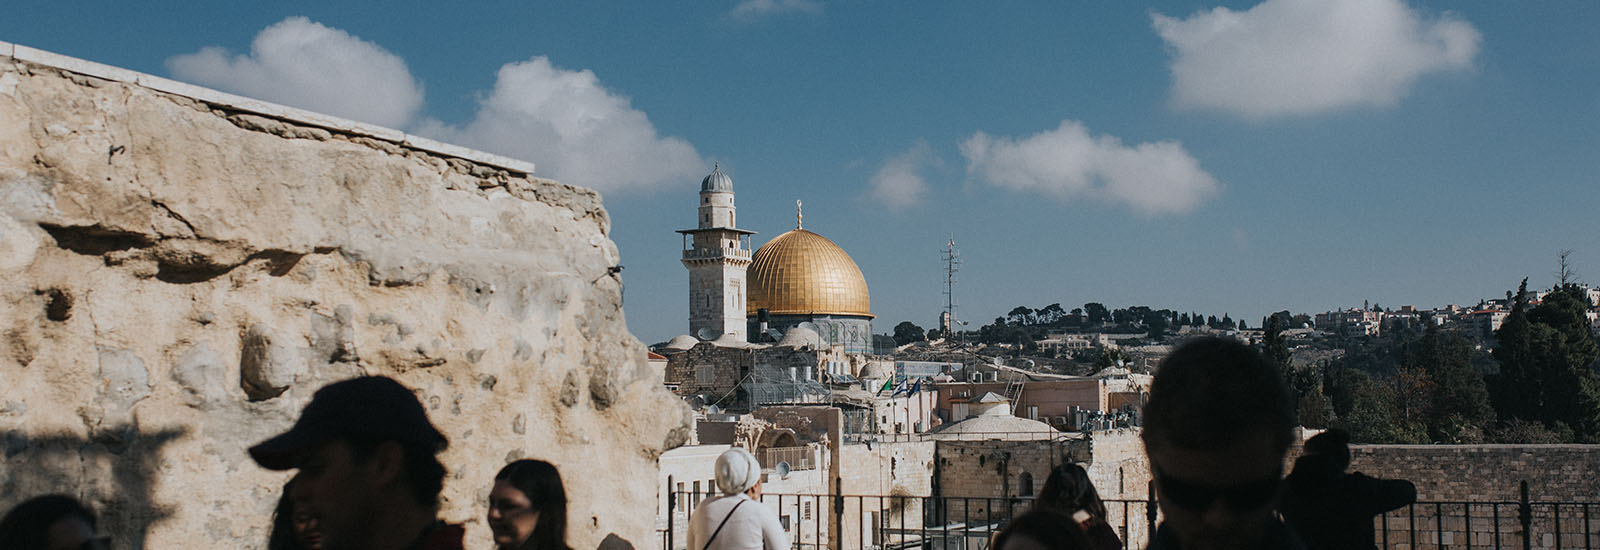 View of the Dome of the Rock